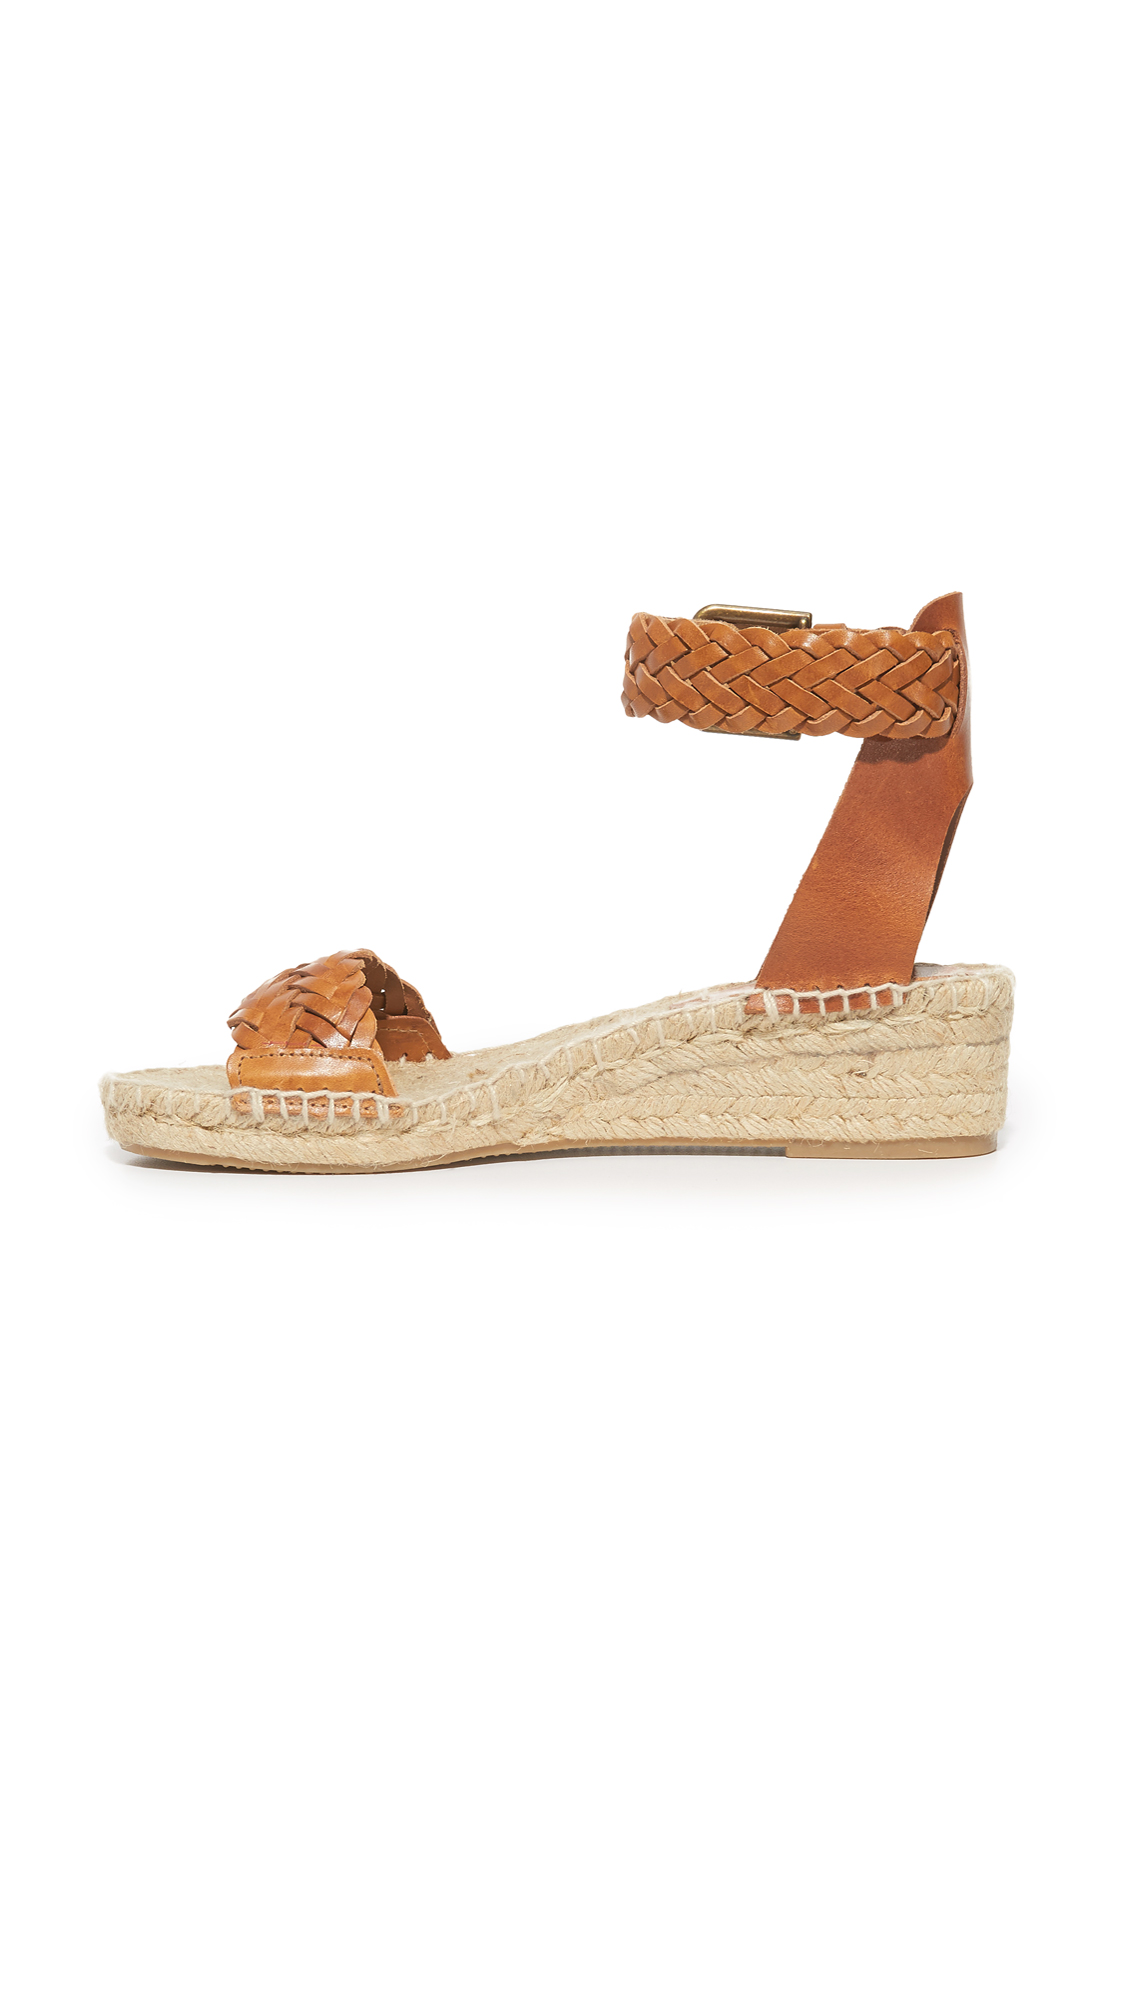 e98b5918d2a Soludos Woven Leather Demi Wedges